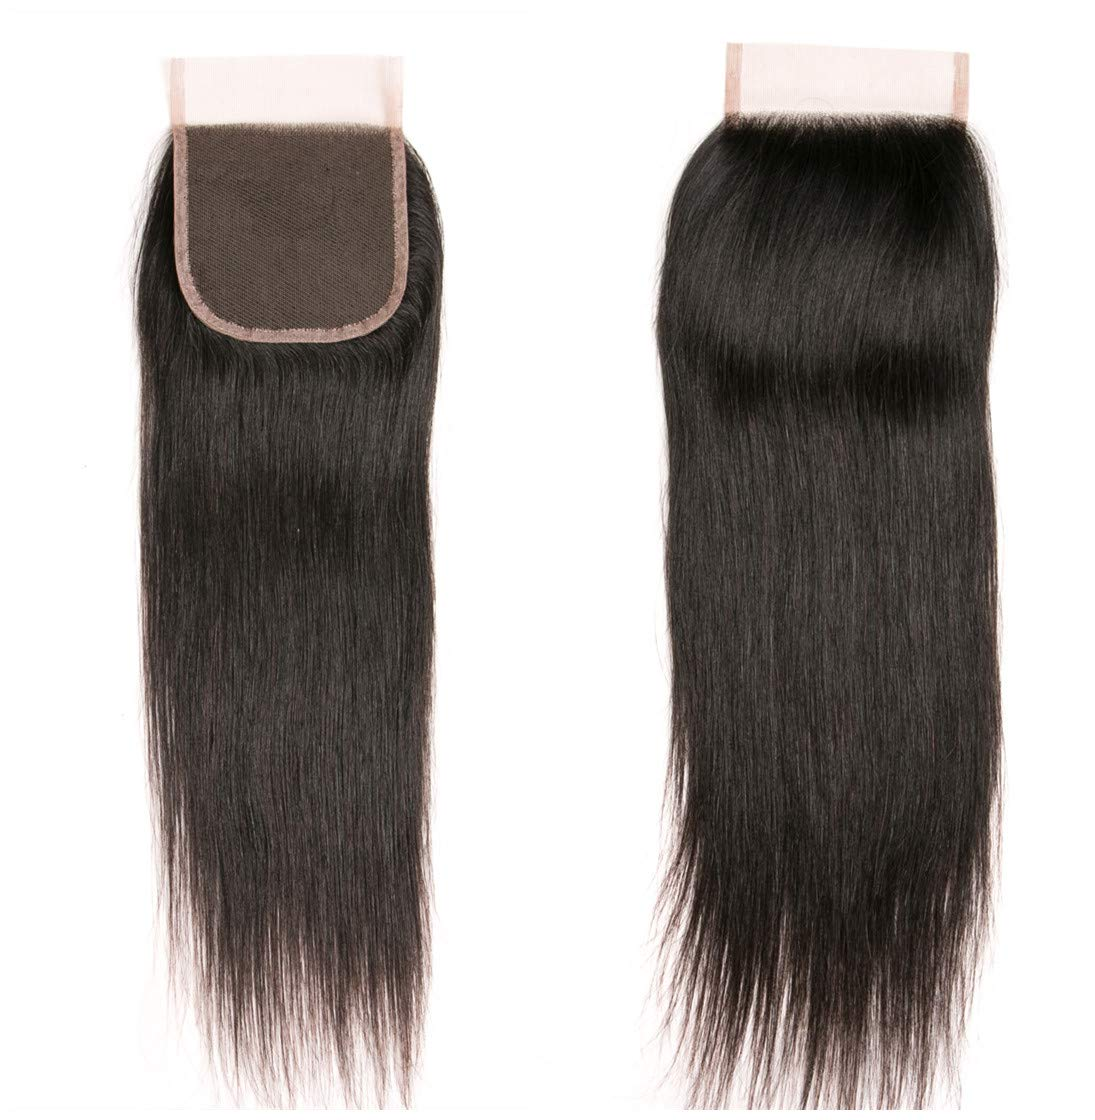 Brazilian Straight Hair With Closure 3 Bundles Unprocessed Virgin Human Hair Bundles With Lace Closure Free Part Hair Extensions Natural Color(12 14 16+10) by RUIMEISI (Image #6)